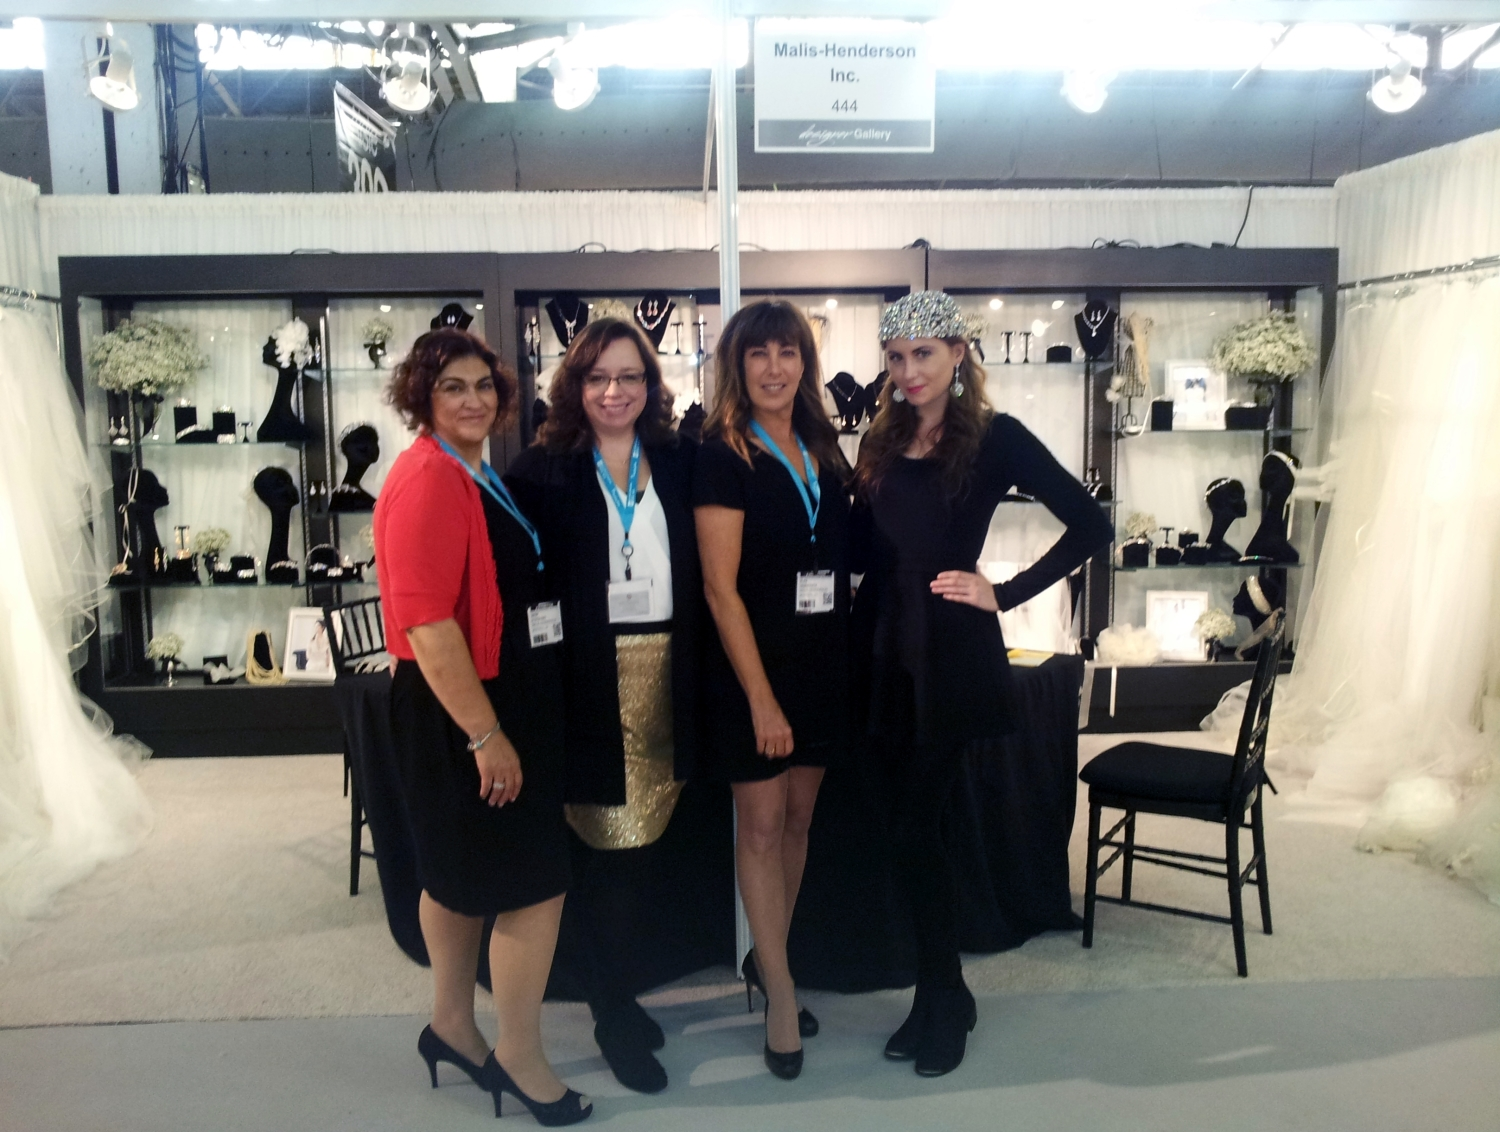 Angie, Nicole, and Elen stand with Nicky, the beautiful New York model.